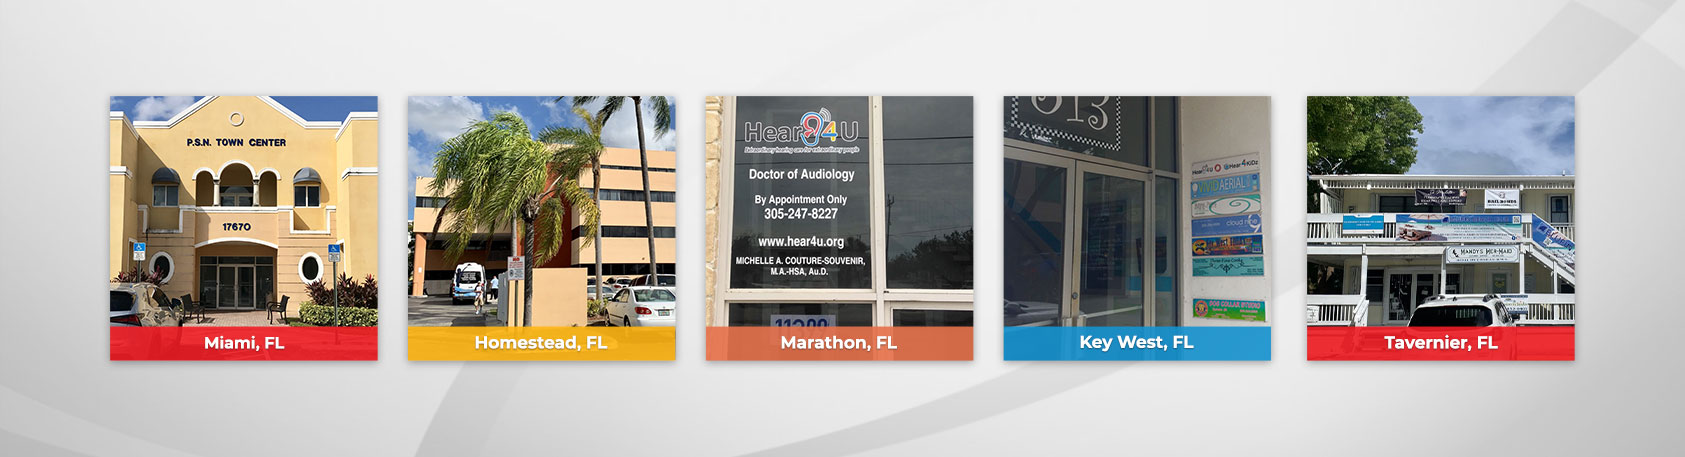 Locations Banner - Hear 4 U Audiology